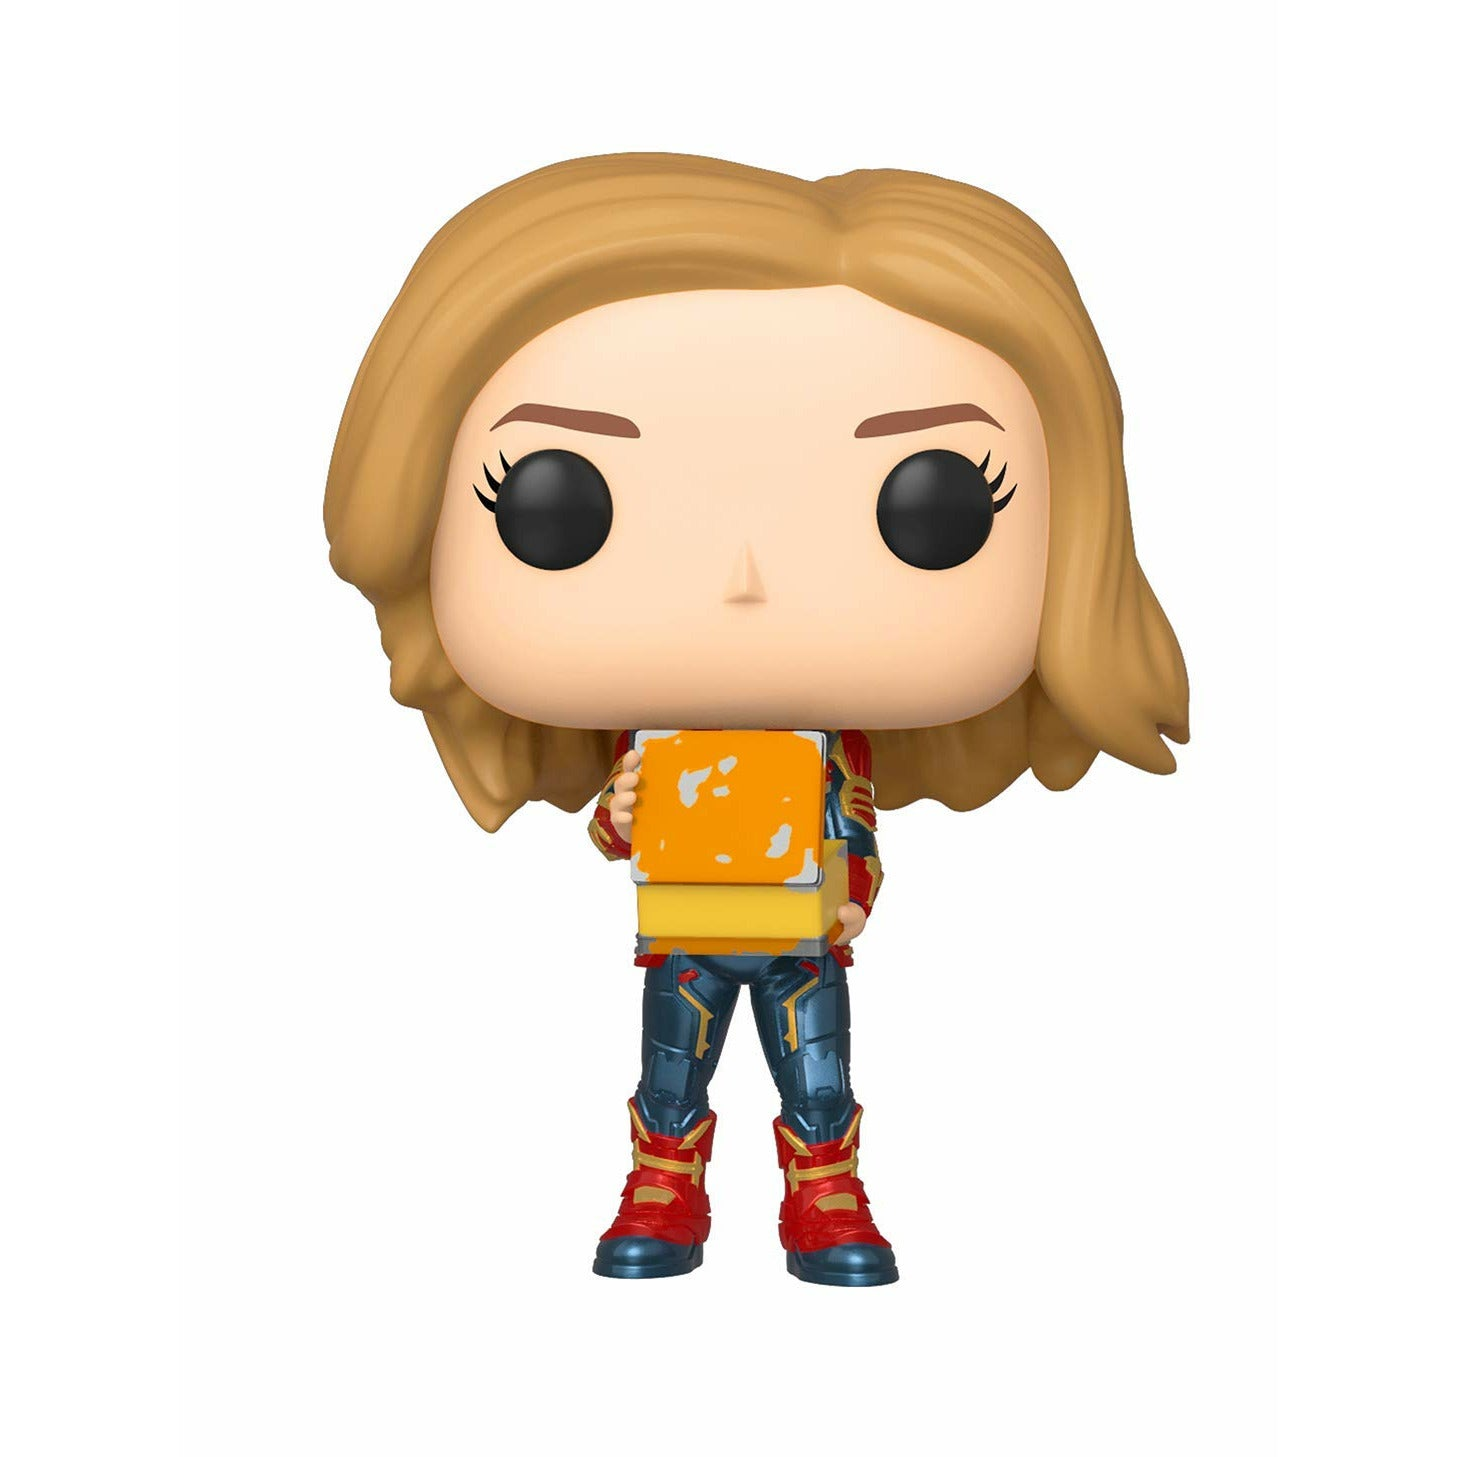 Marvel Captain Marvel Bobblehead Pop! Glow in the Dark Vinyl Figure